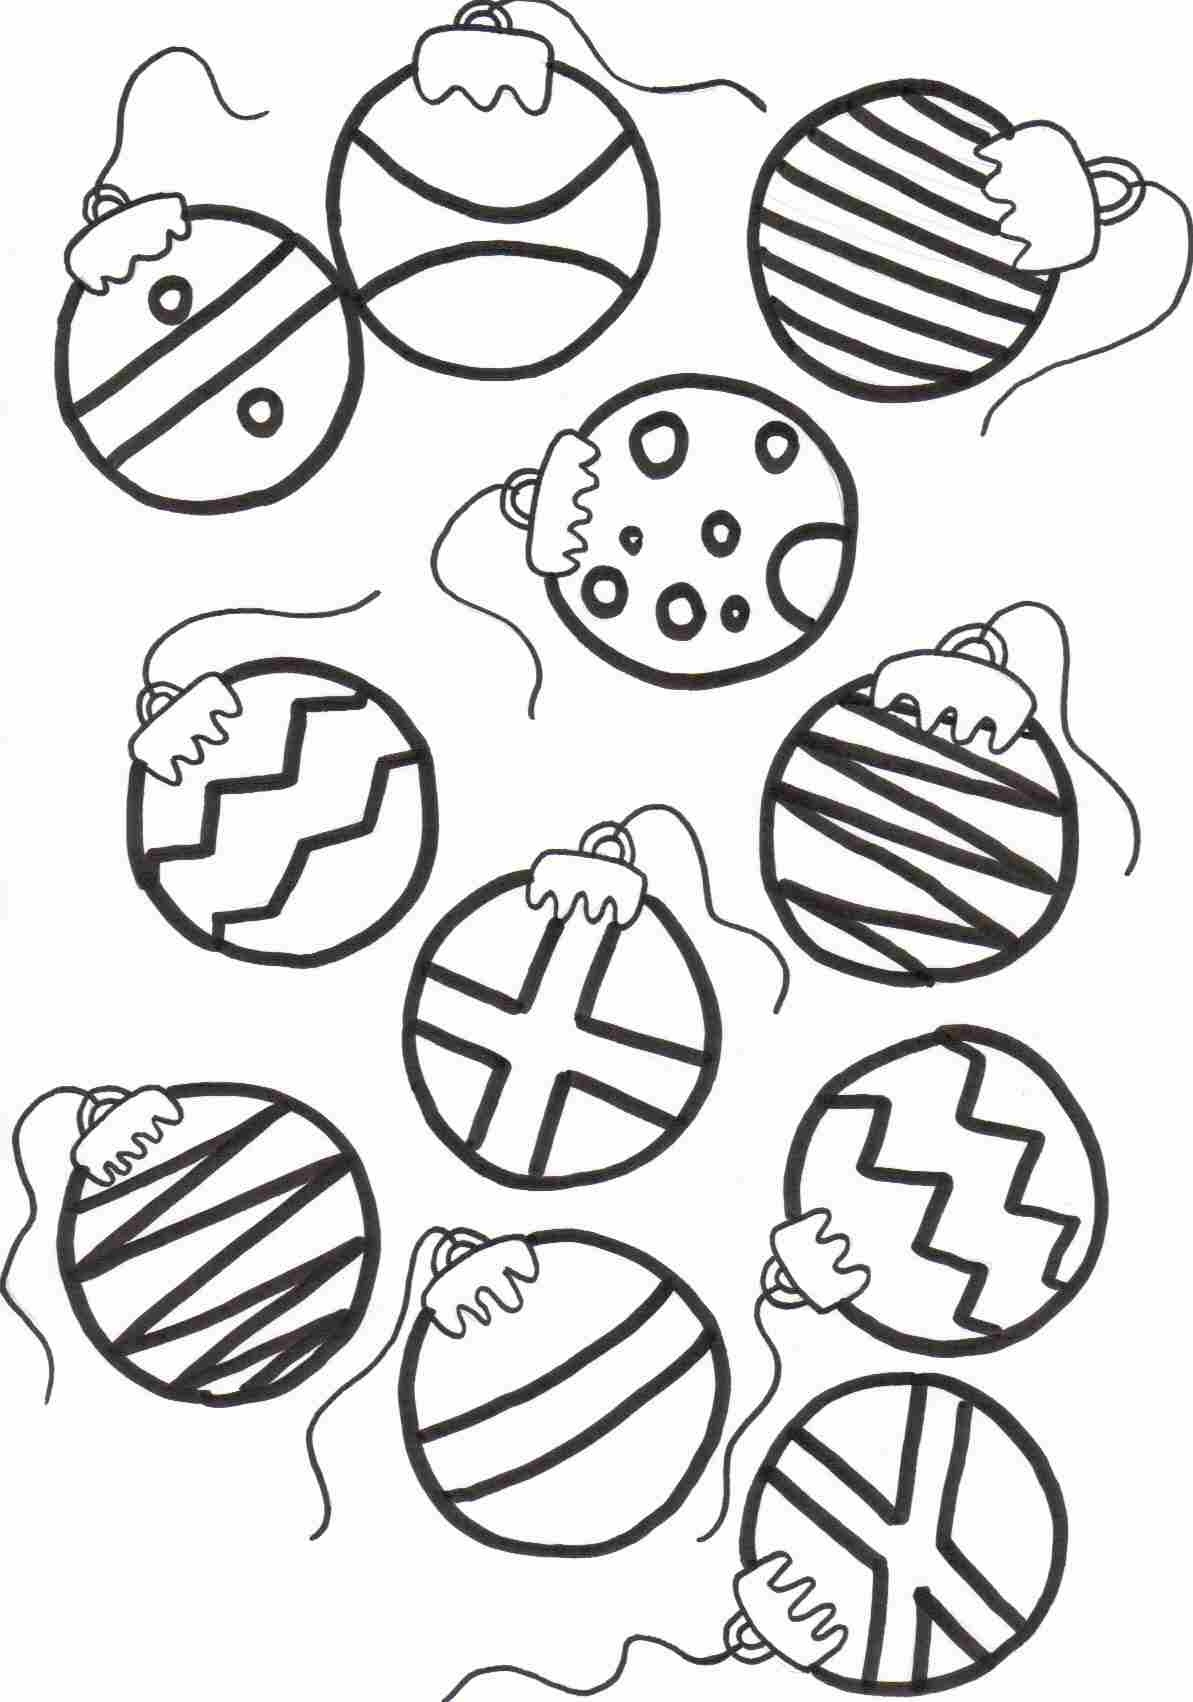 Christmas Ornaments Coloring Pages Printable - Coloring Home - Free Printable Ornaments To Color